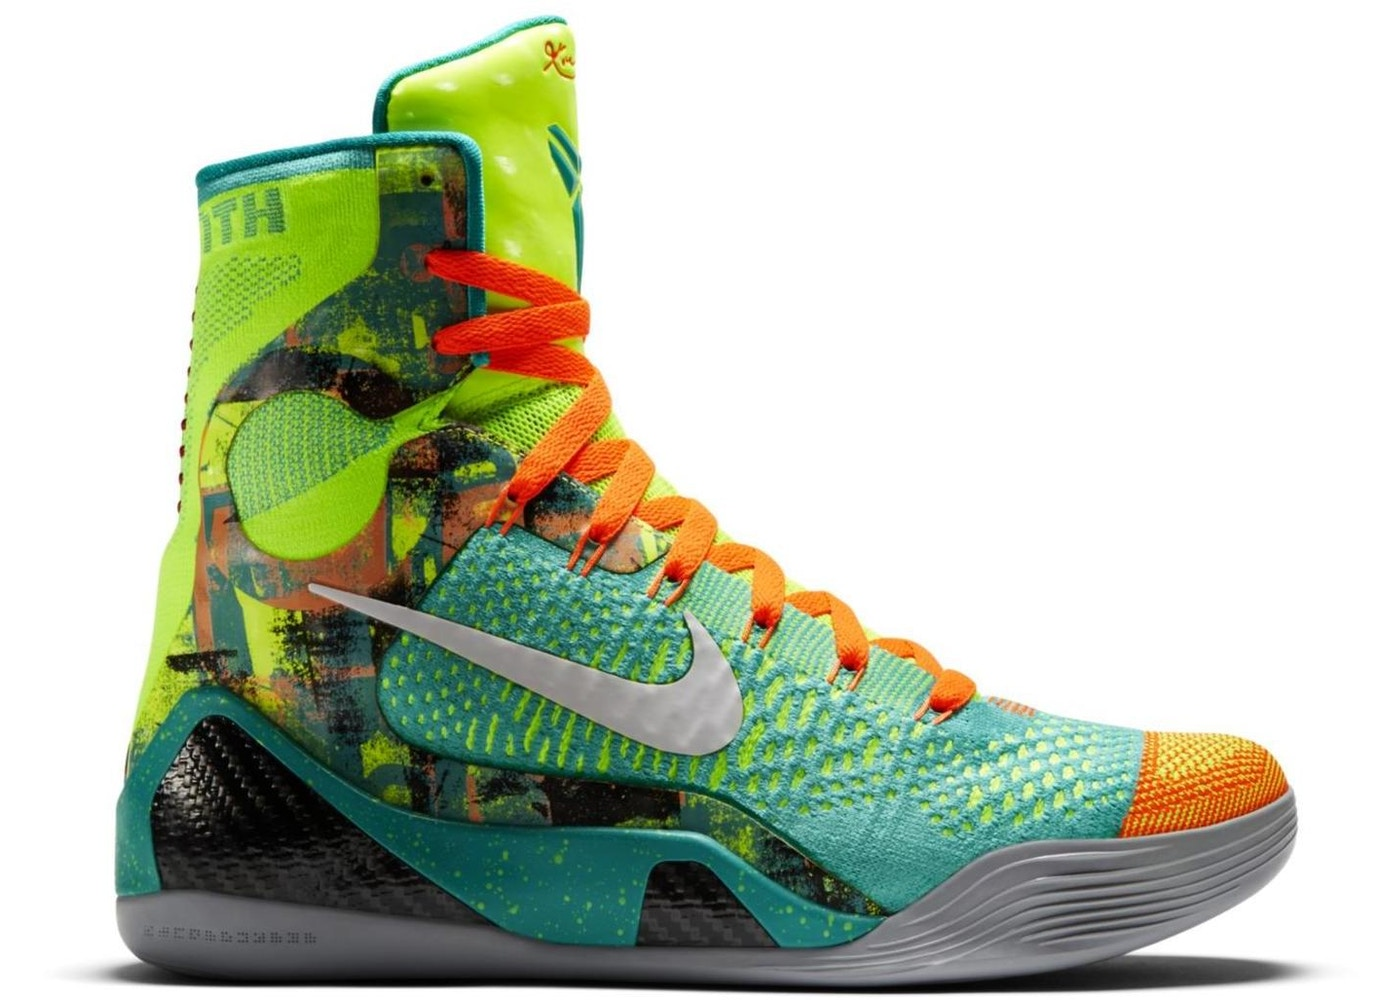 reputable site 3960d f3df9 Nike Kobe 9 Shoes - Average Sale Price